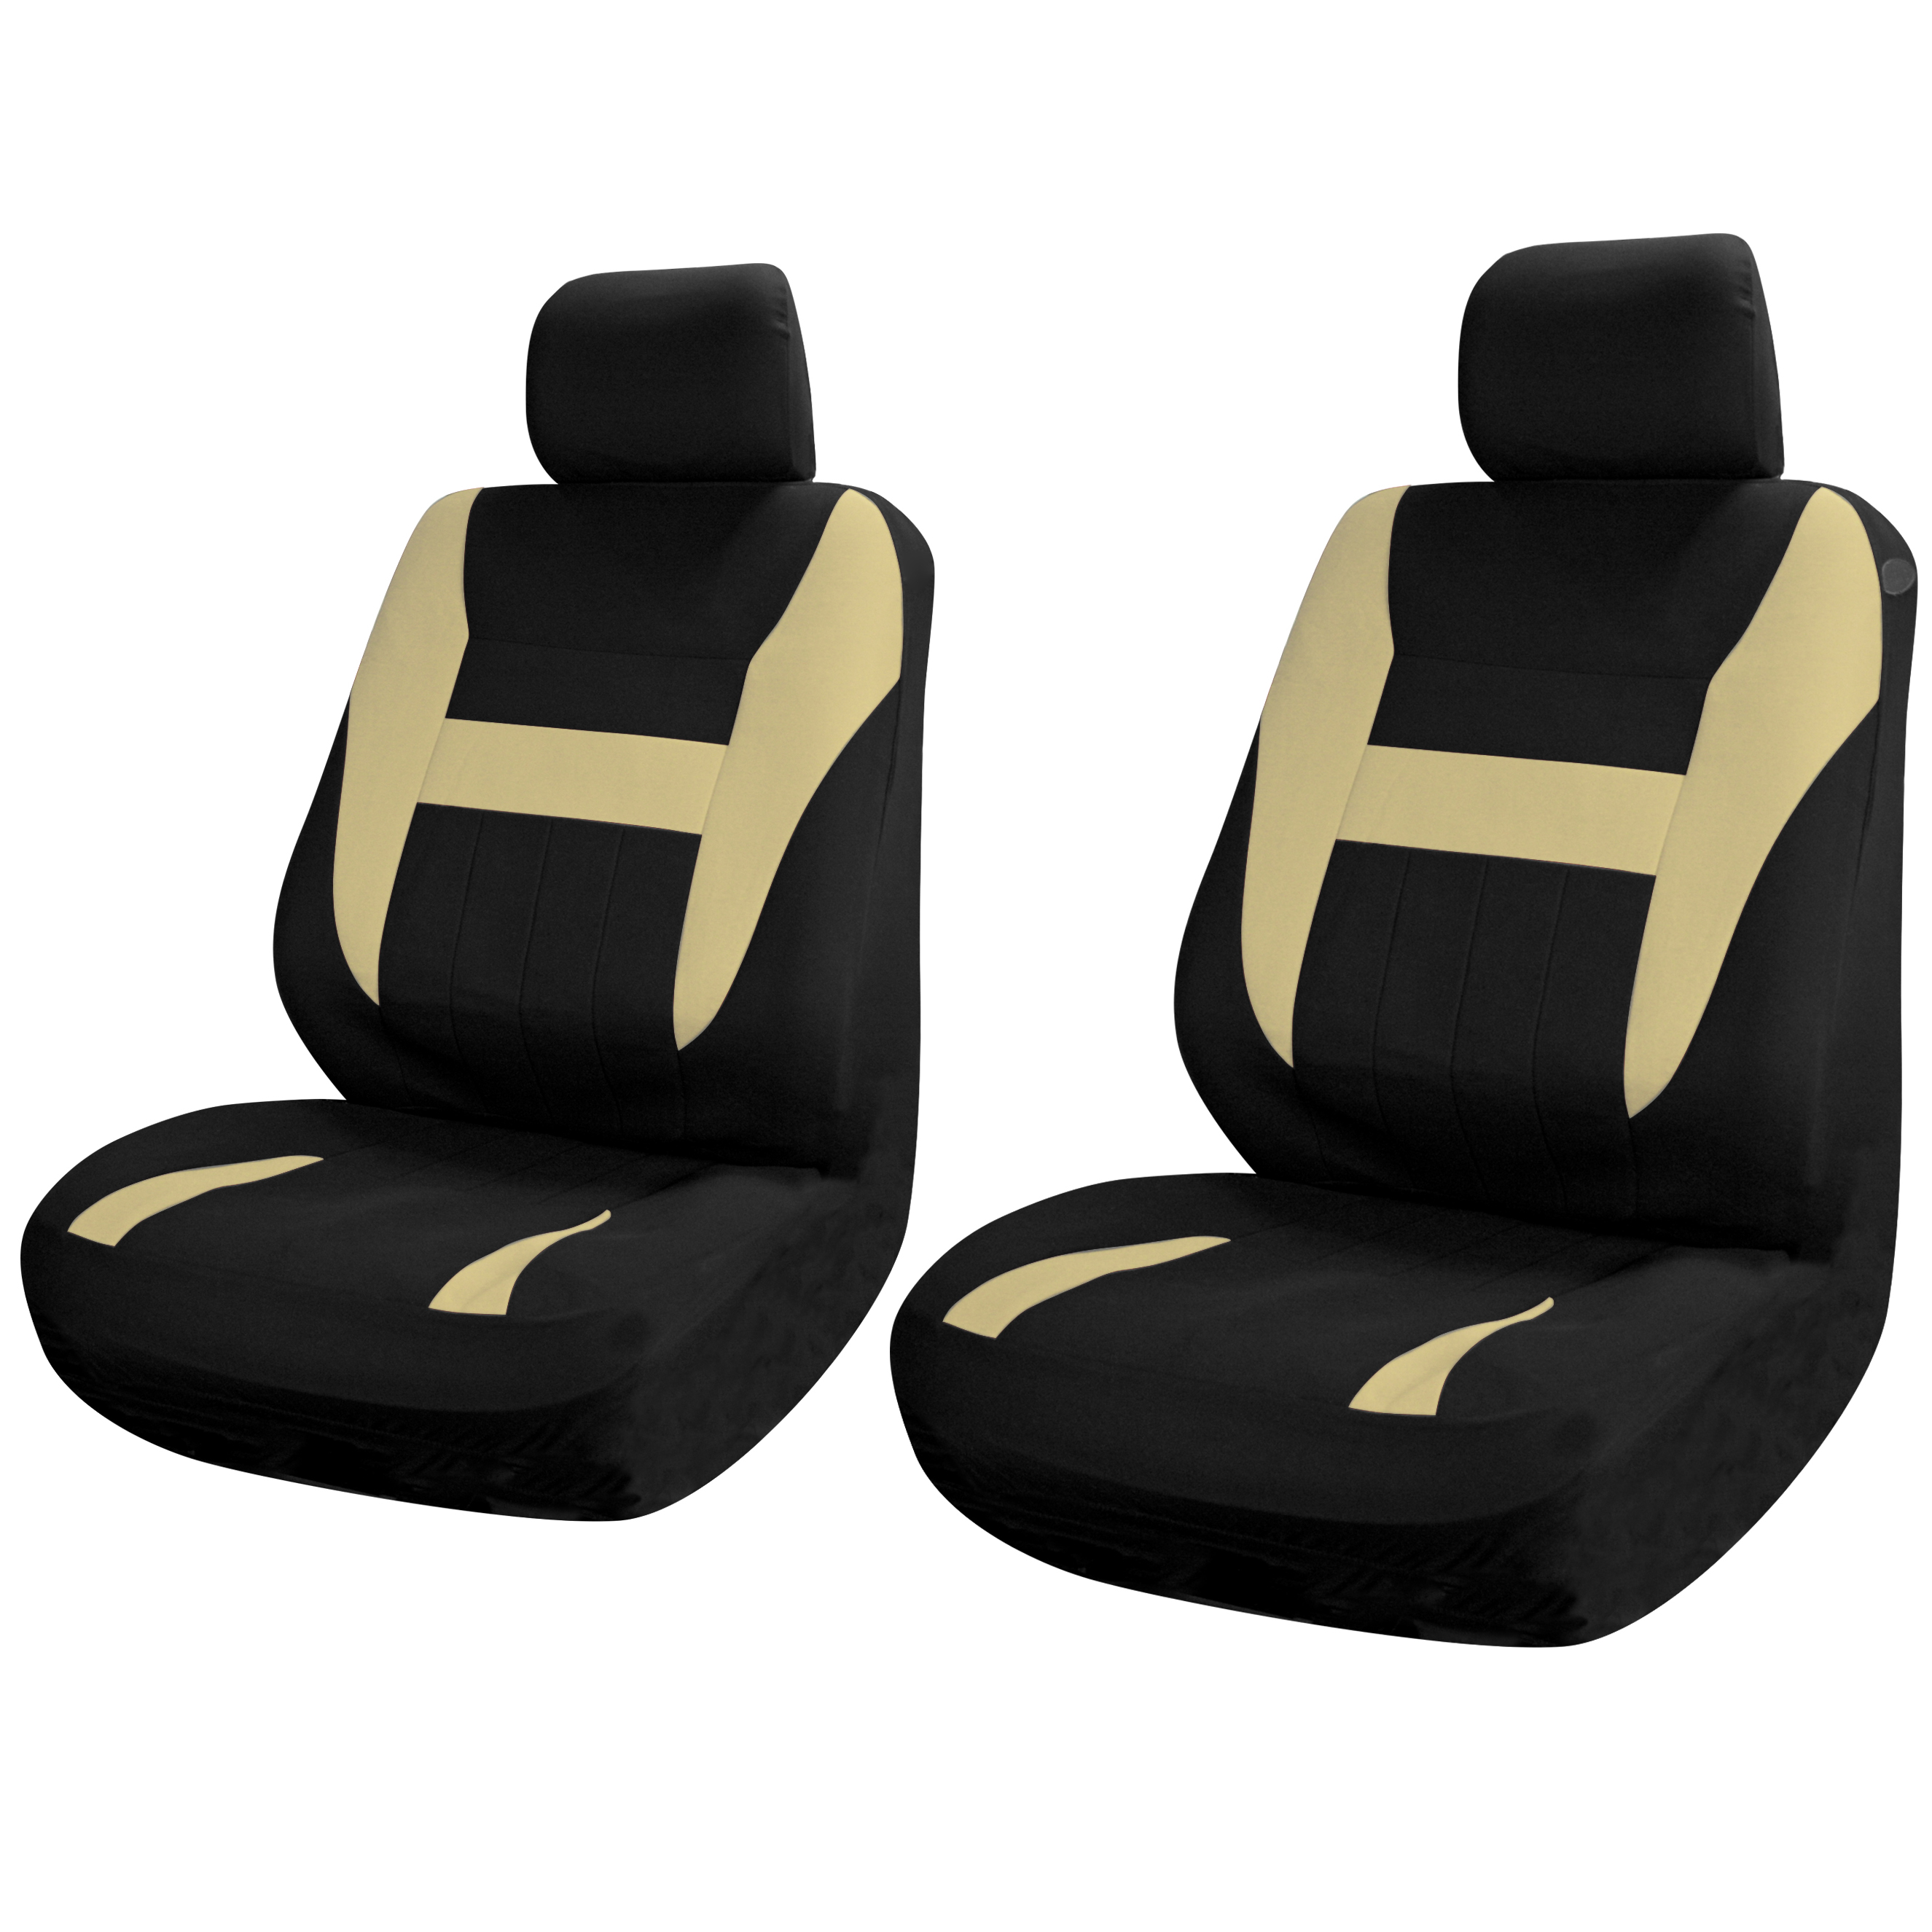 SUV Van Truck Seat Covers For Front Bucket Seats Black